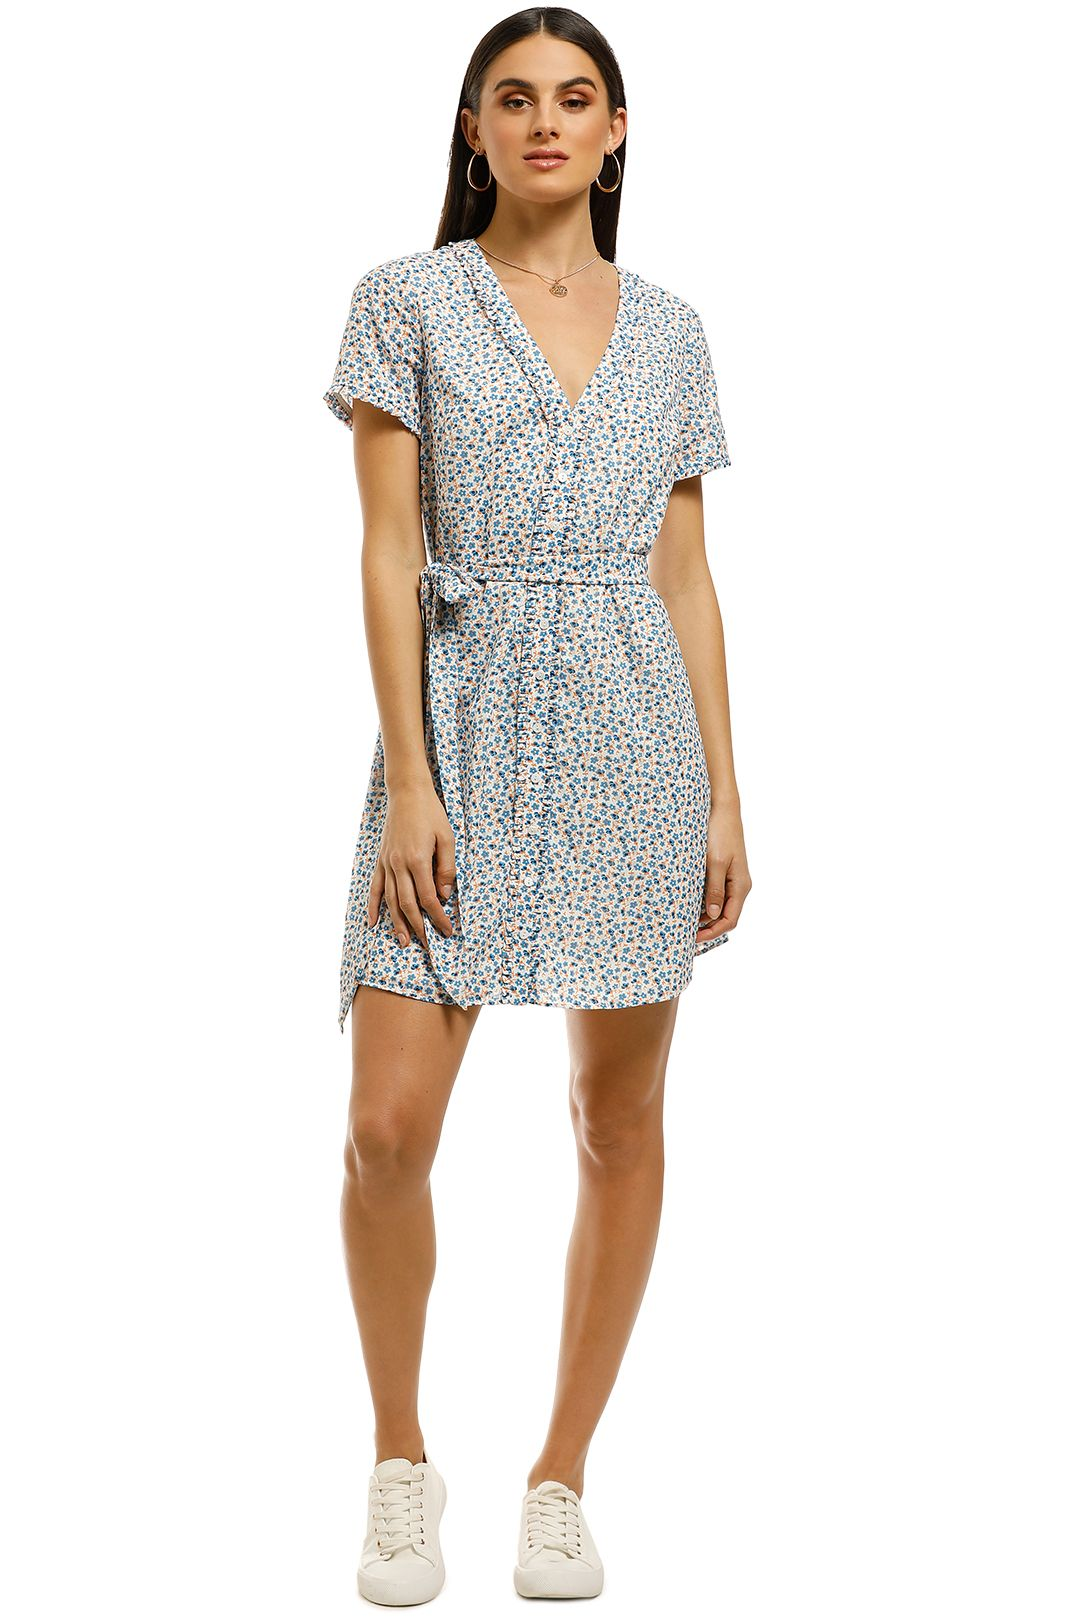 The-East-Order-Charlotte-Mini-Dress-Blue-Floral-Print-Front